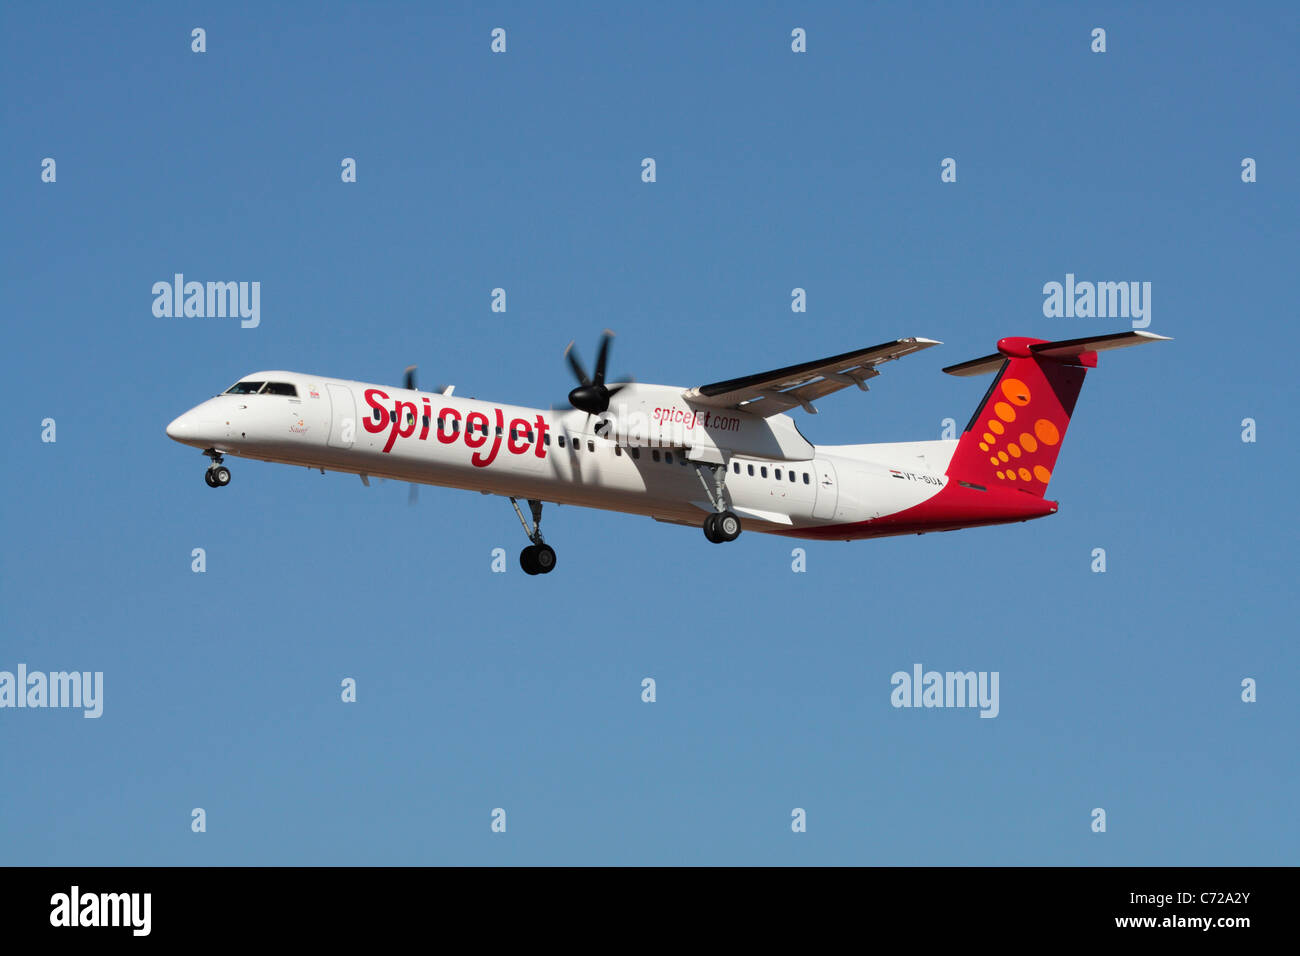 Bombardier Q400 short haul regional airliner belonging to the Indian low-cost airline SpiceJet - Stock Image